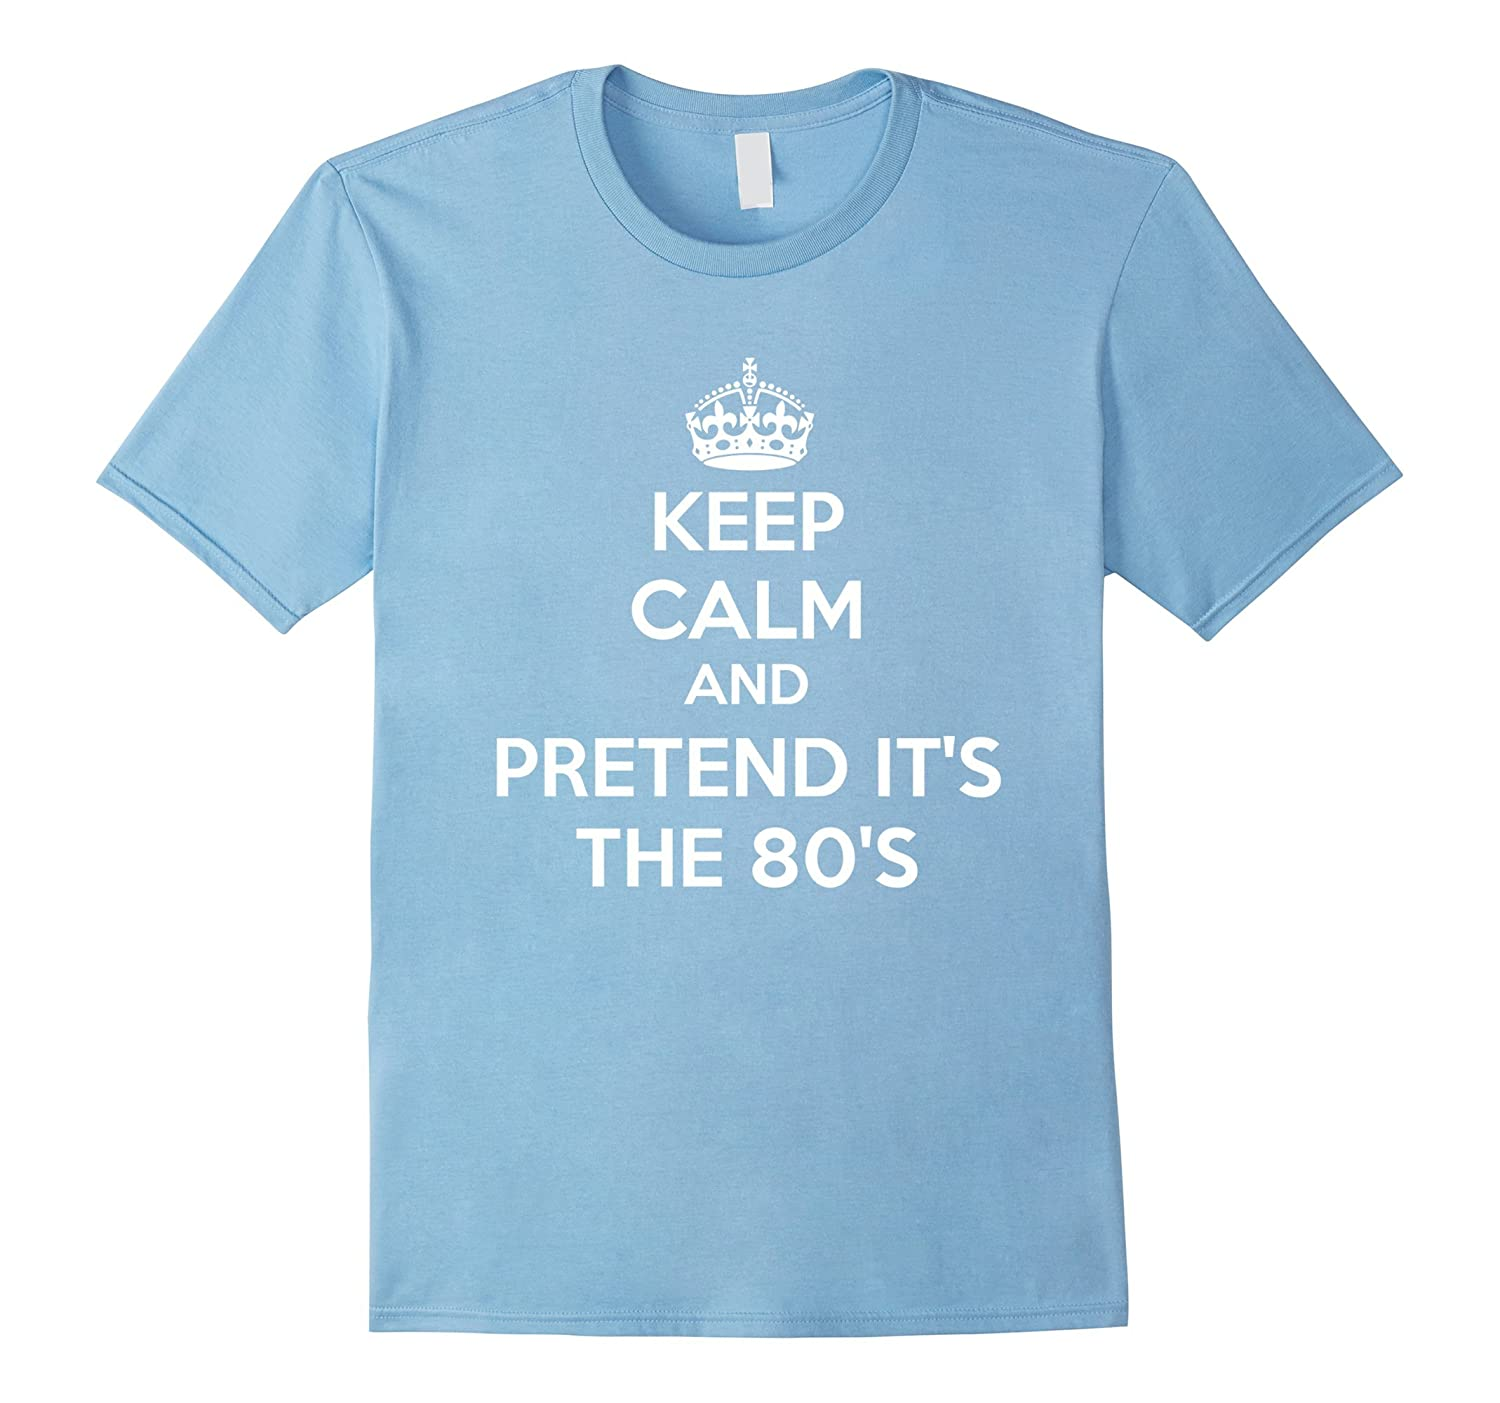 Funny 80s Shirt keep Calm And pretent Its the 80s-TD